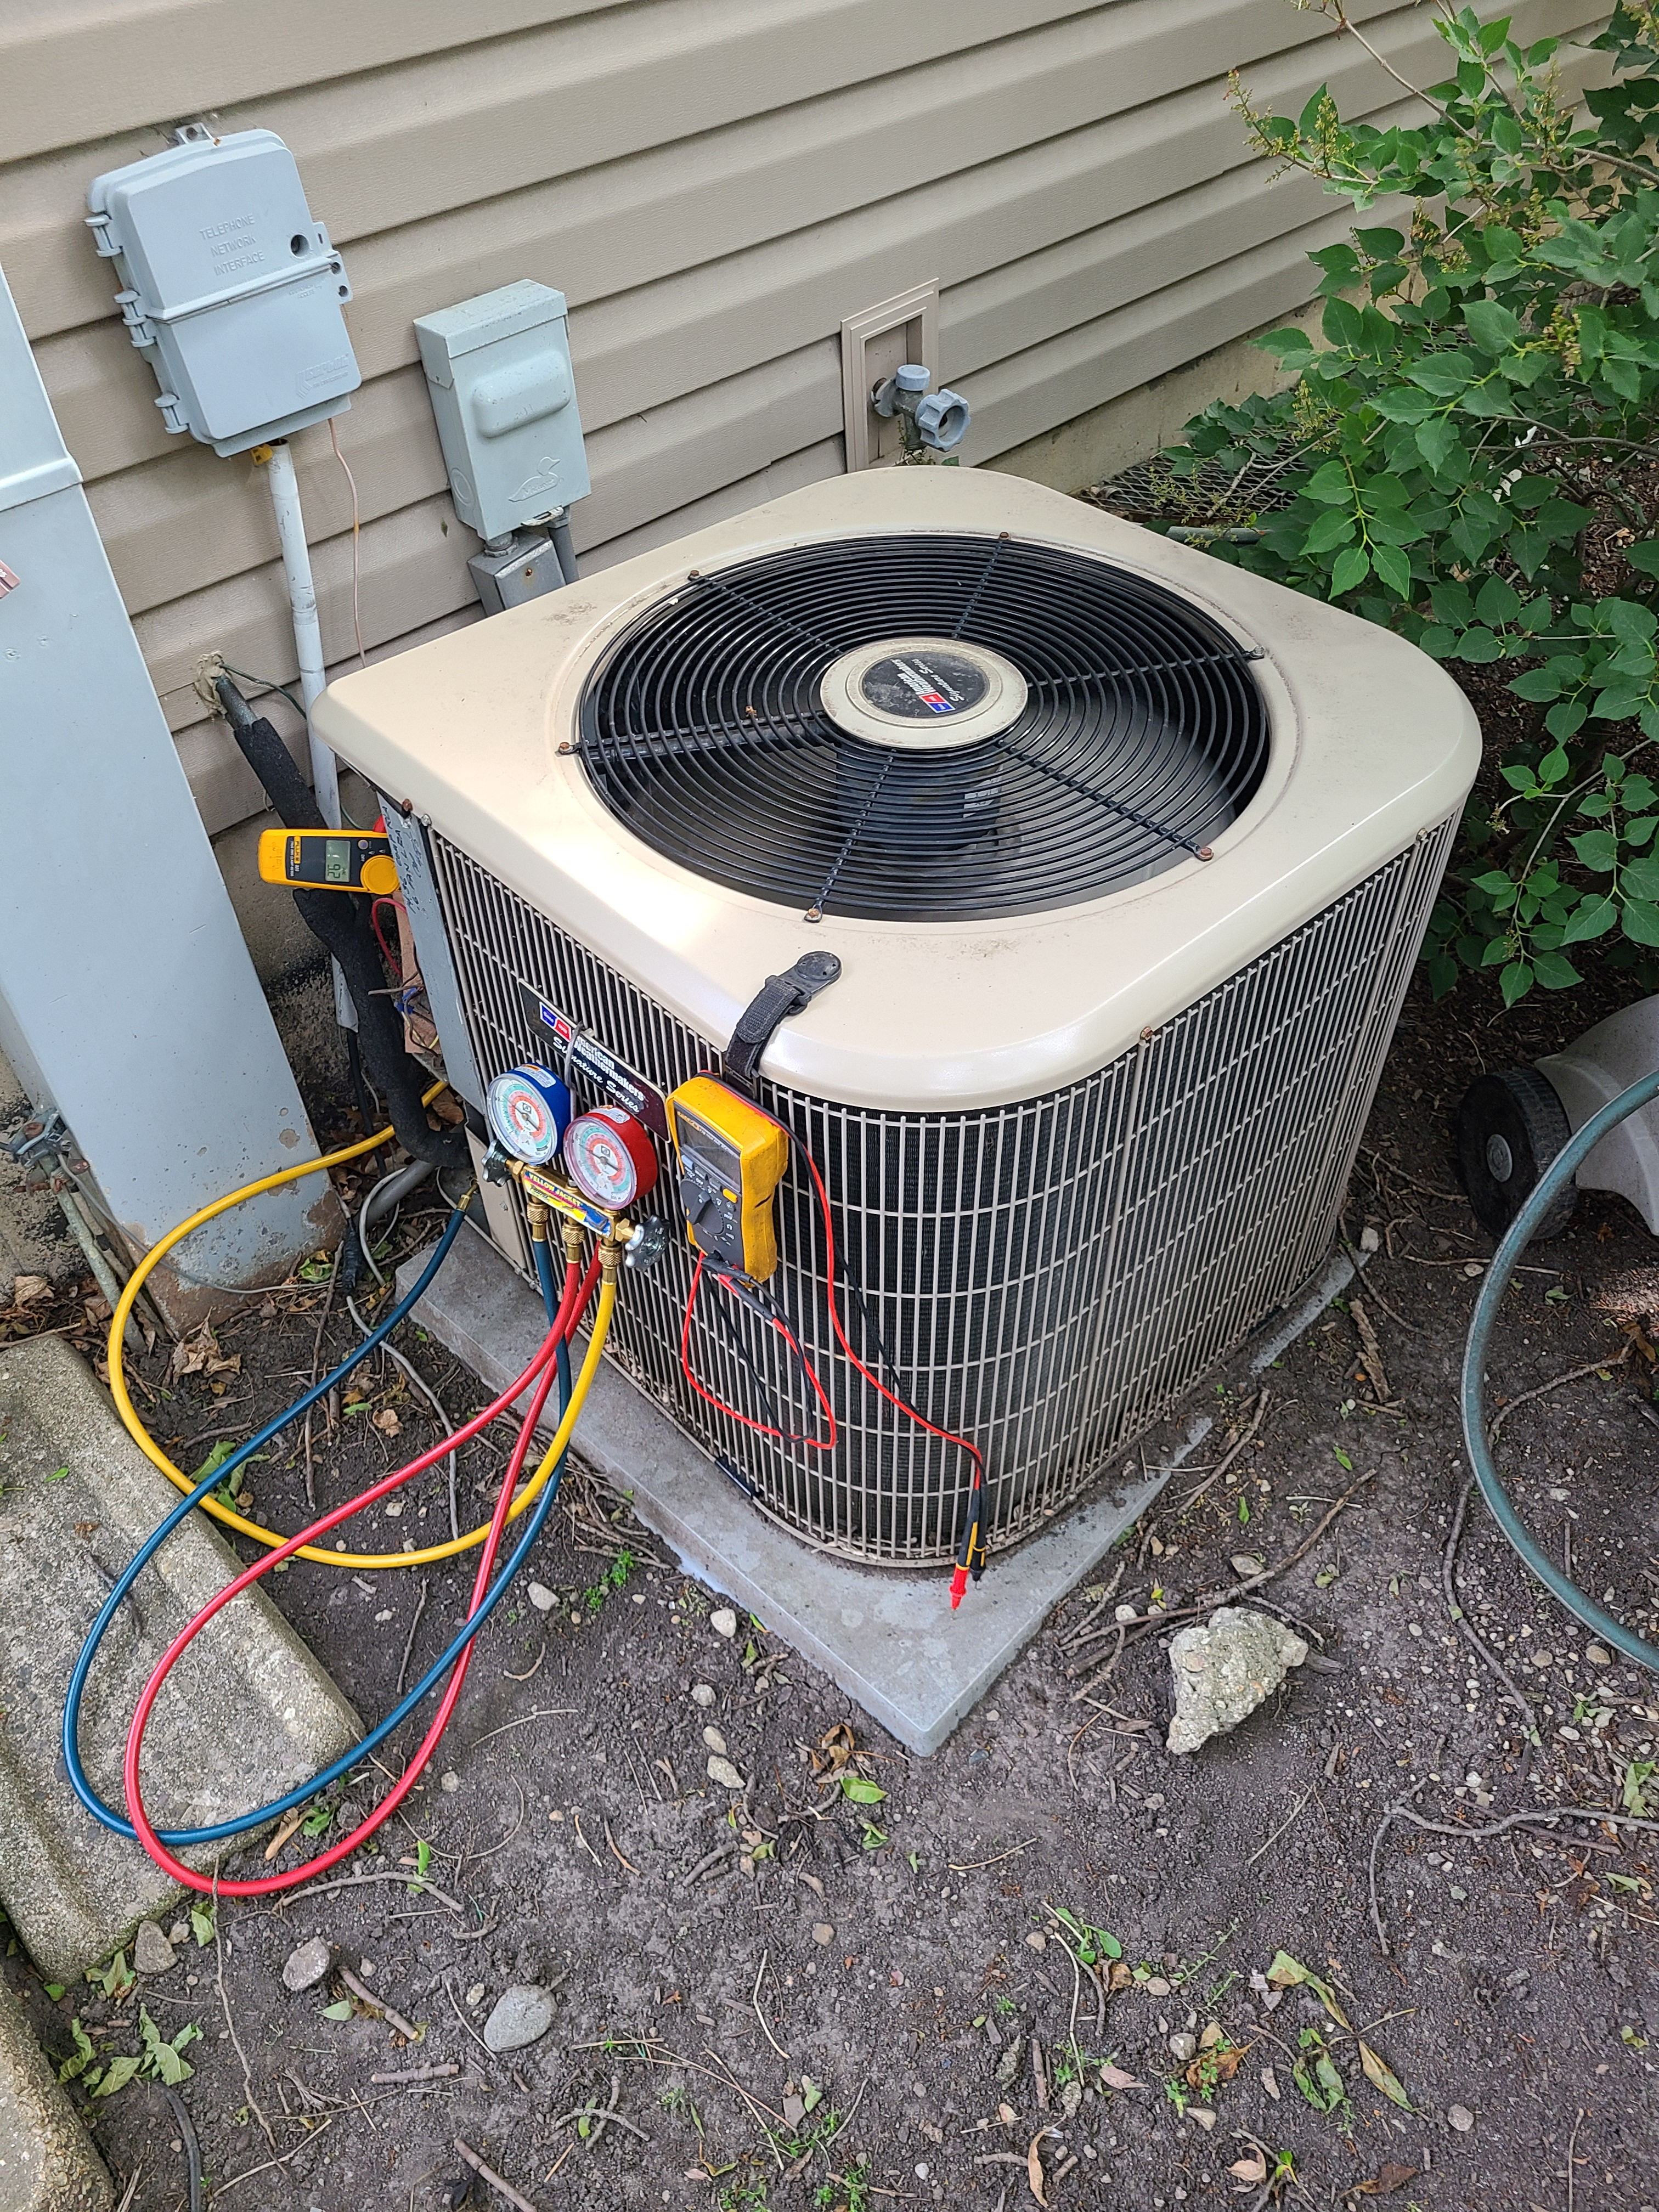 Amana ac cleaned and checked.  System tuned up and ready for summer.